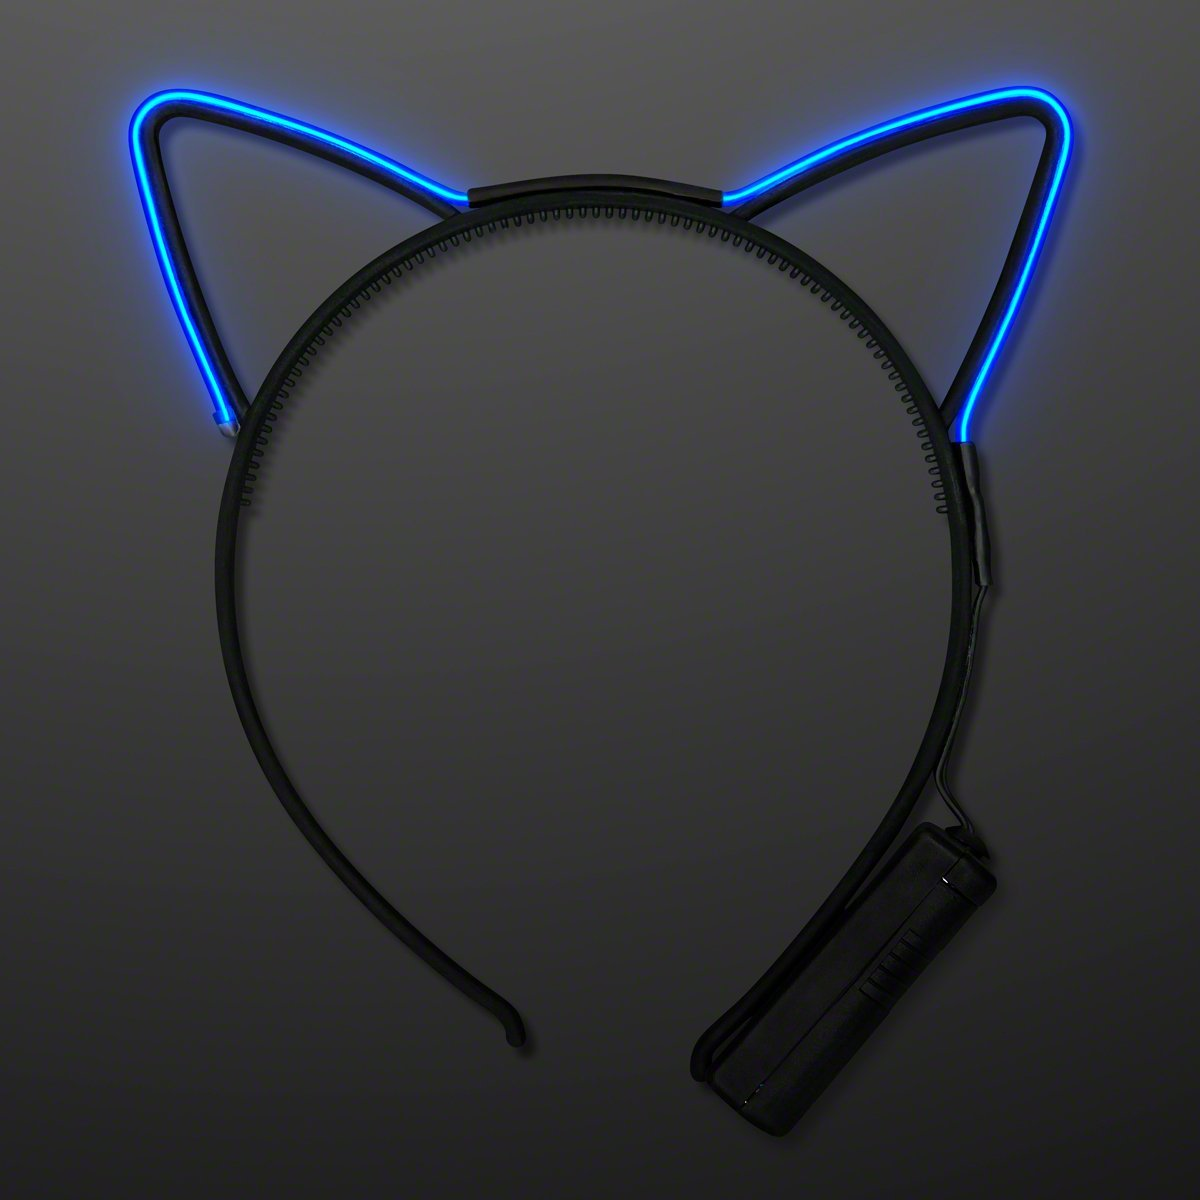 picture regarding Printable Cat Ears referred to as Reasonably priced Printable Cat Ears, obtain Printable Cat Ears discounts upon